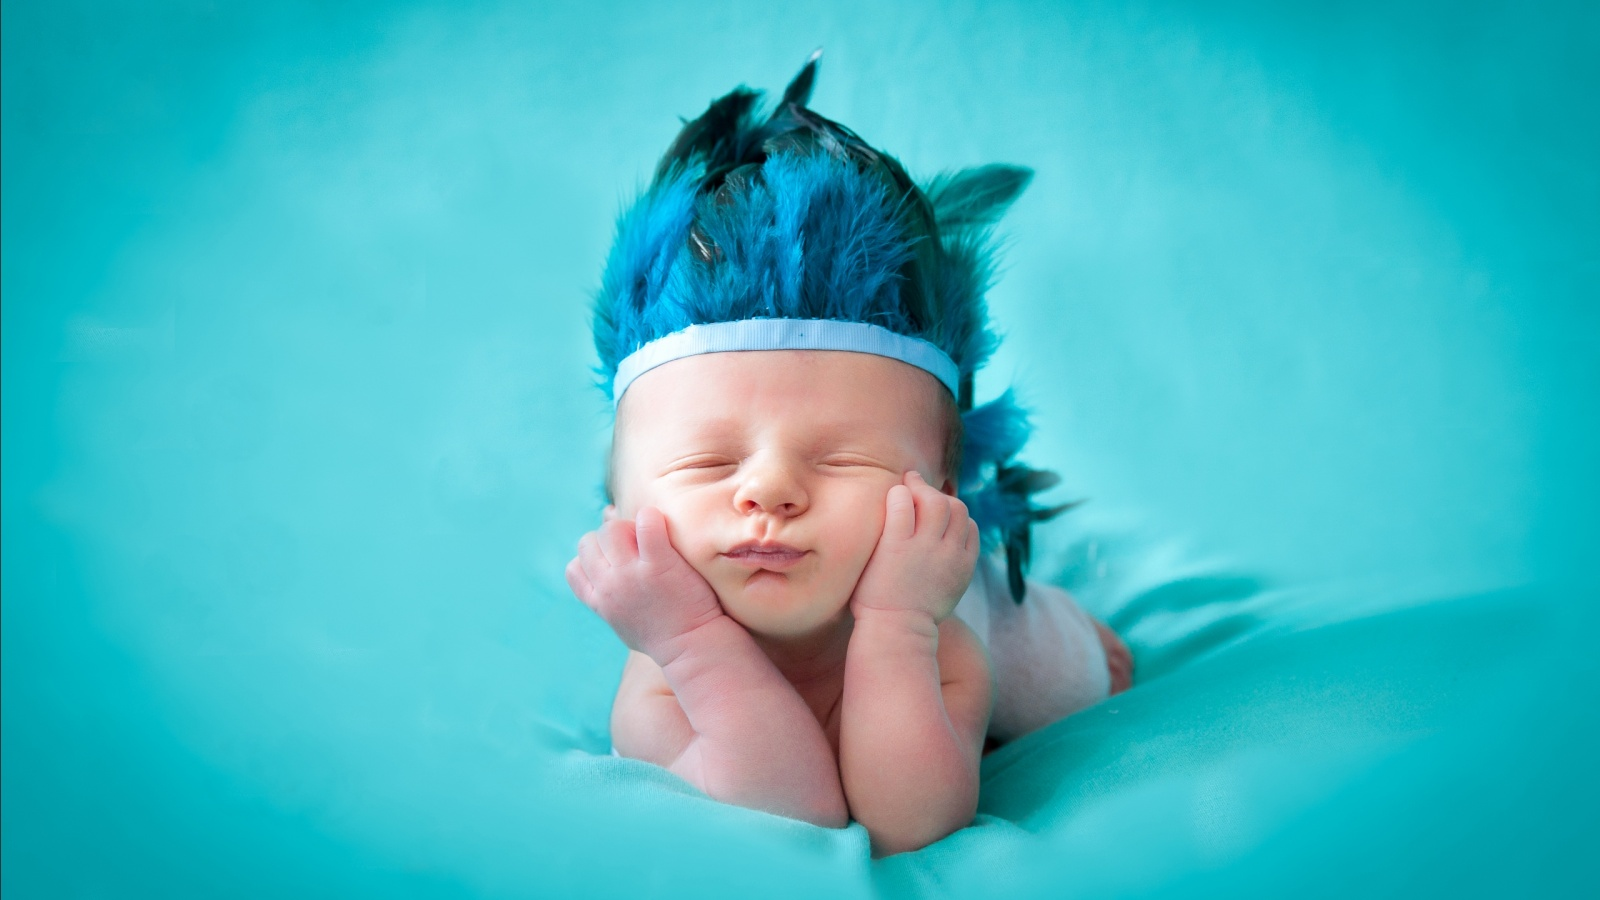 Sweet Indian Baby Wallpapers - - 237.5KB